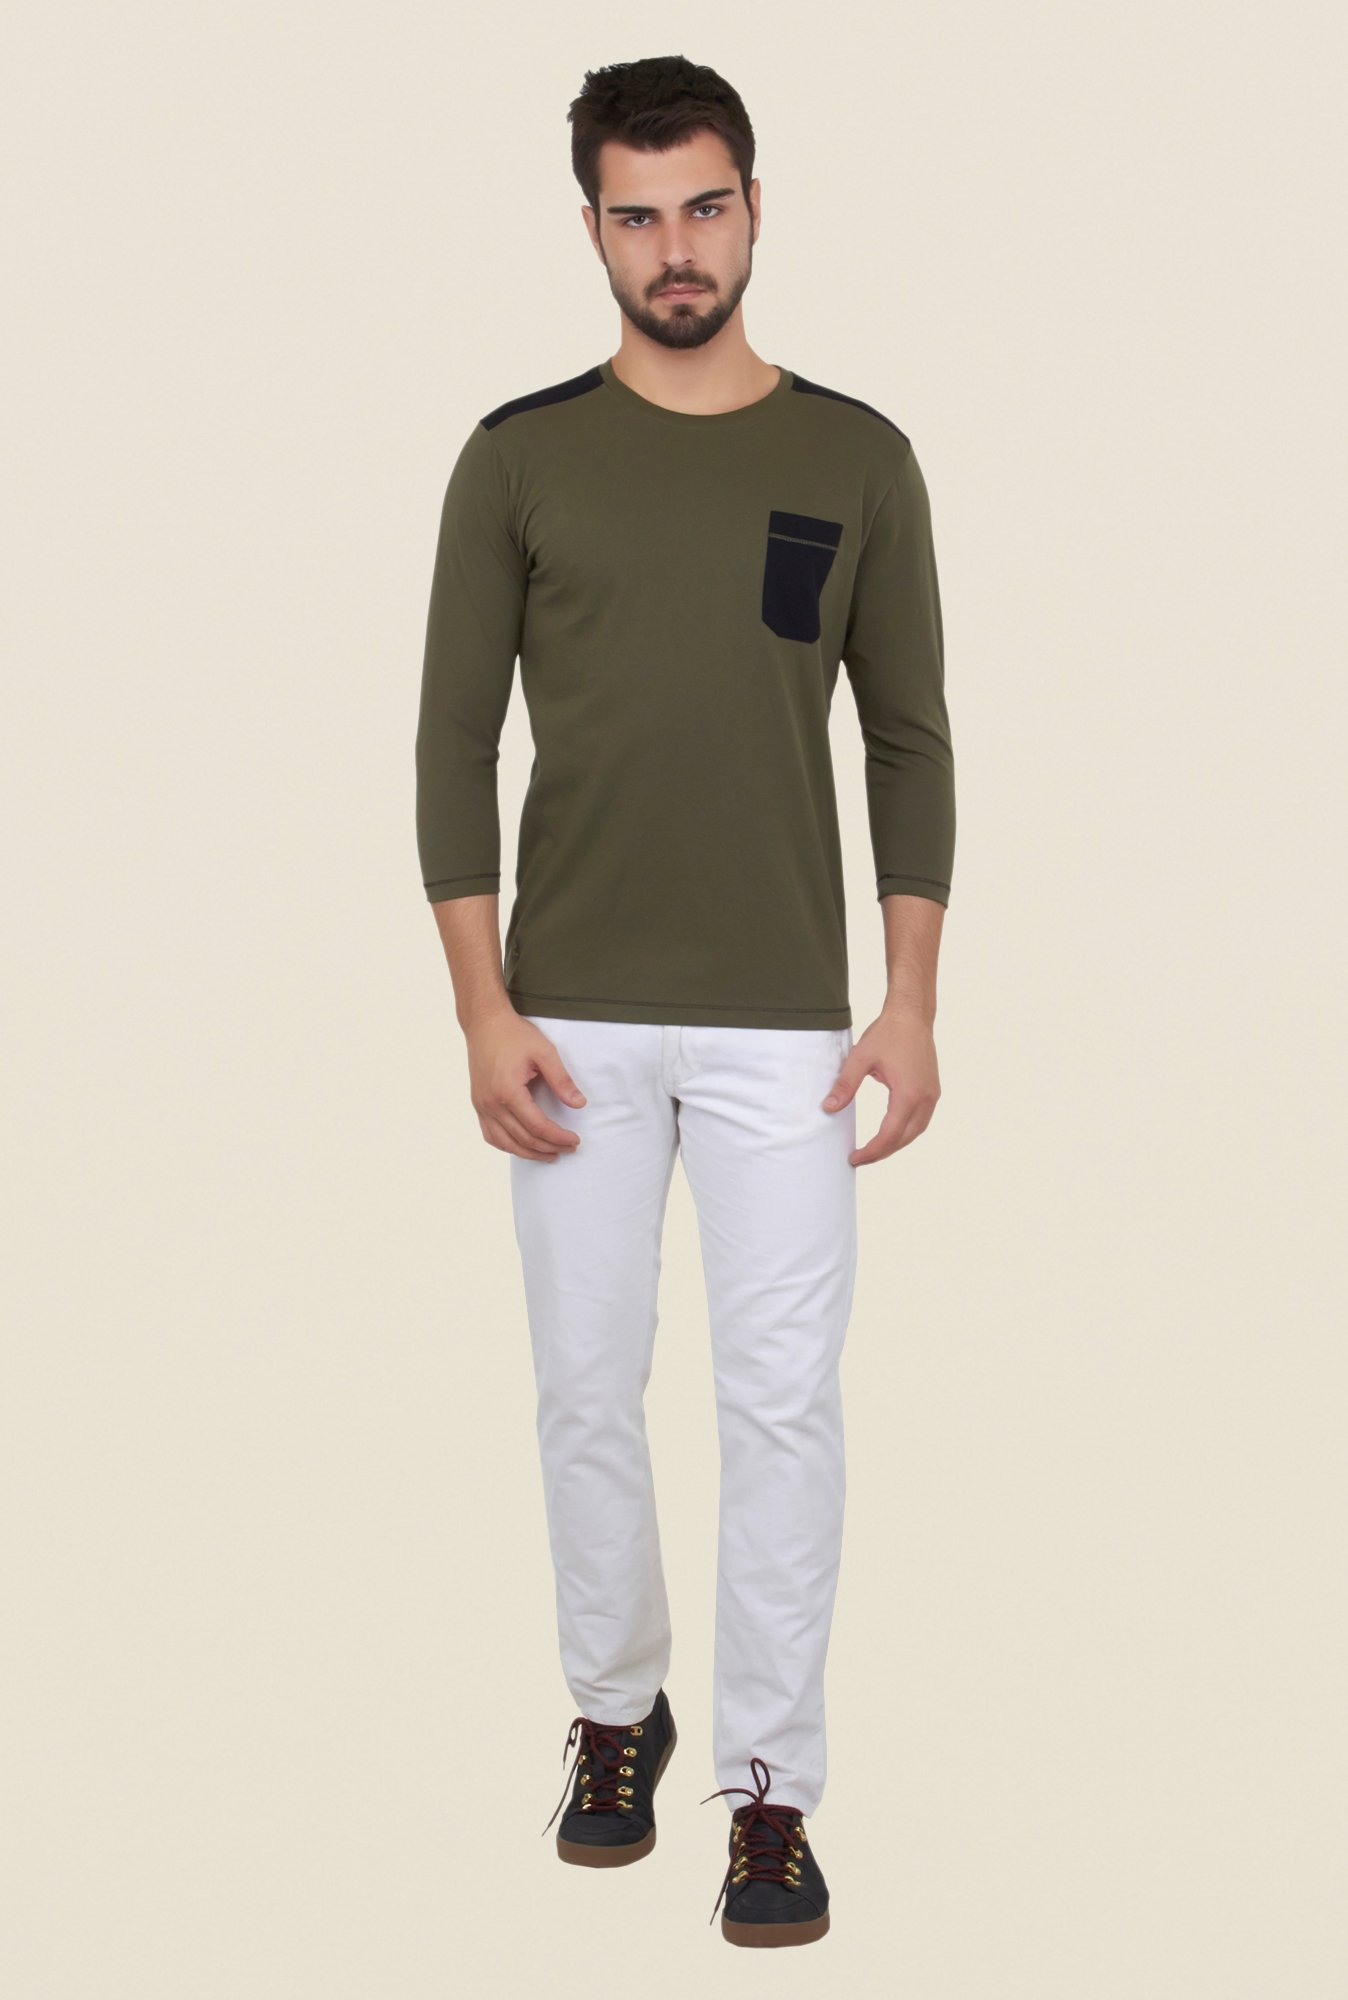 Cult Fiction Olive Solid T Shirt